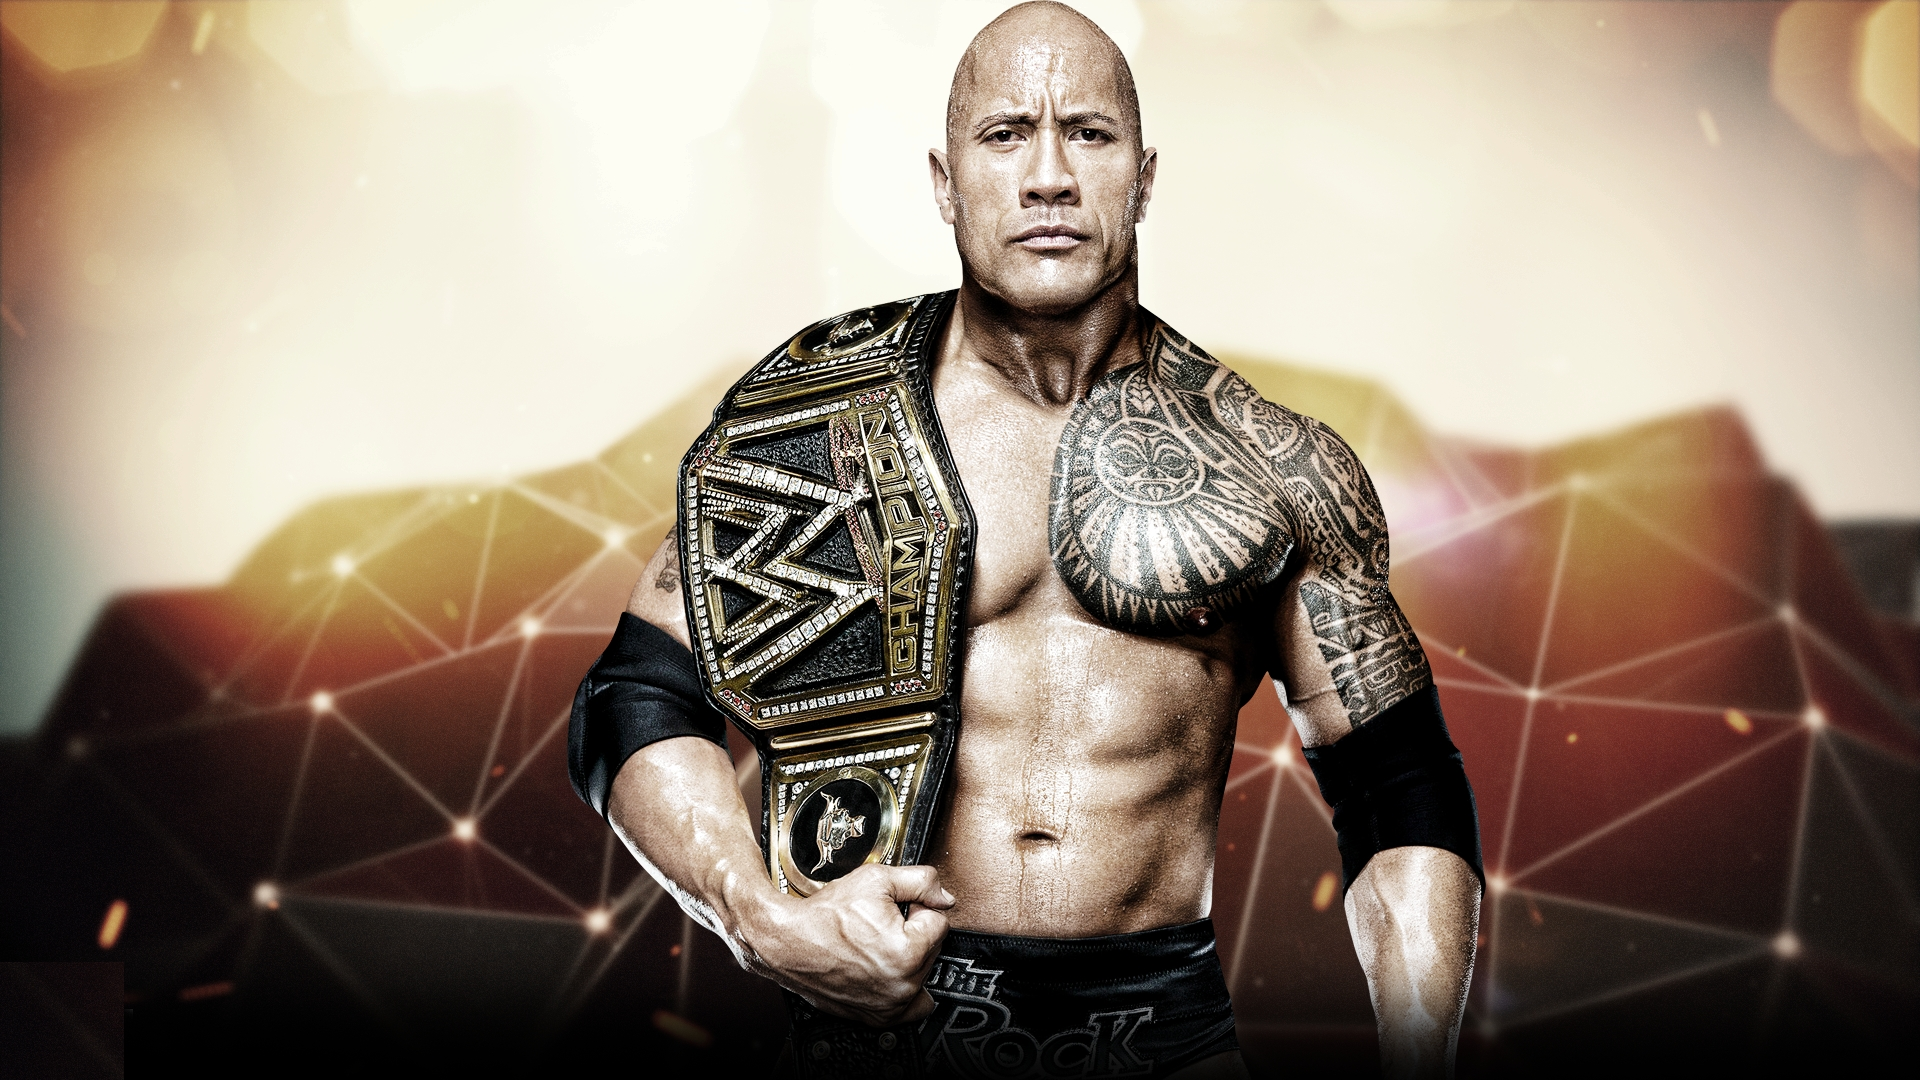 wwe the rock hd wallpaper hd images – one hd wallpaper pictures